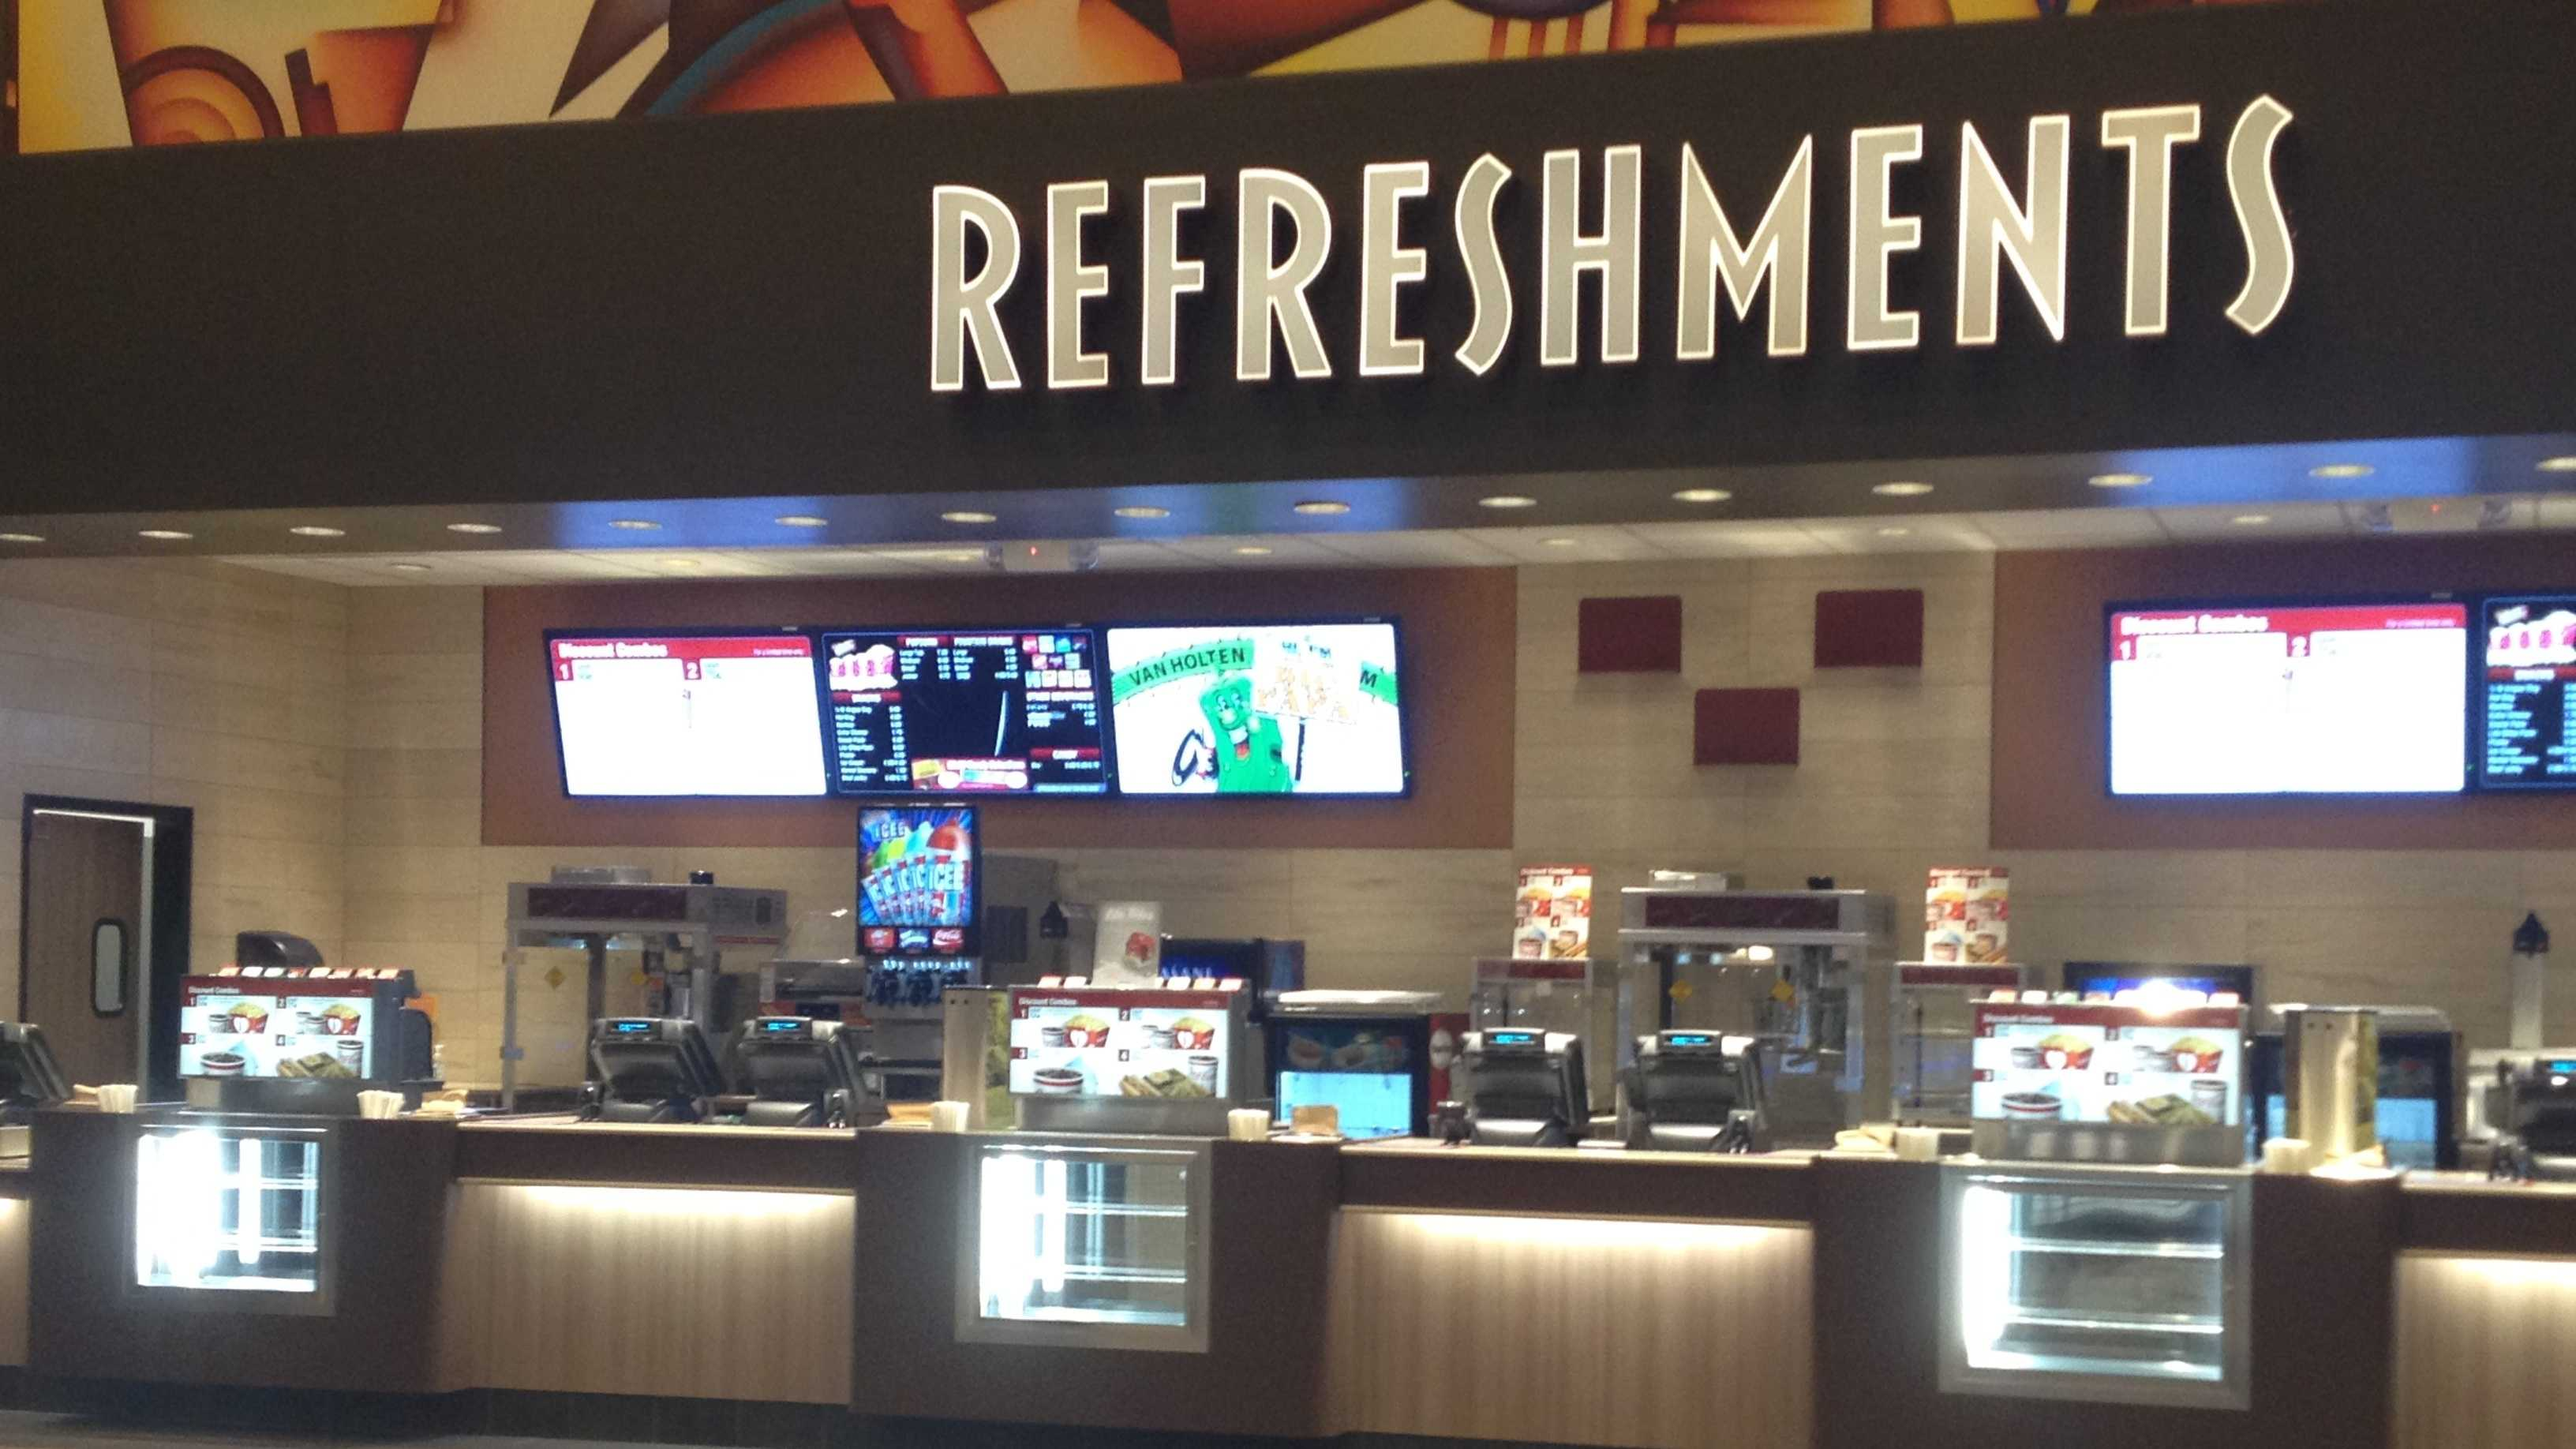 Movie theater refreshments